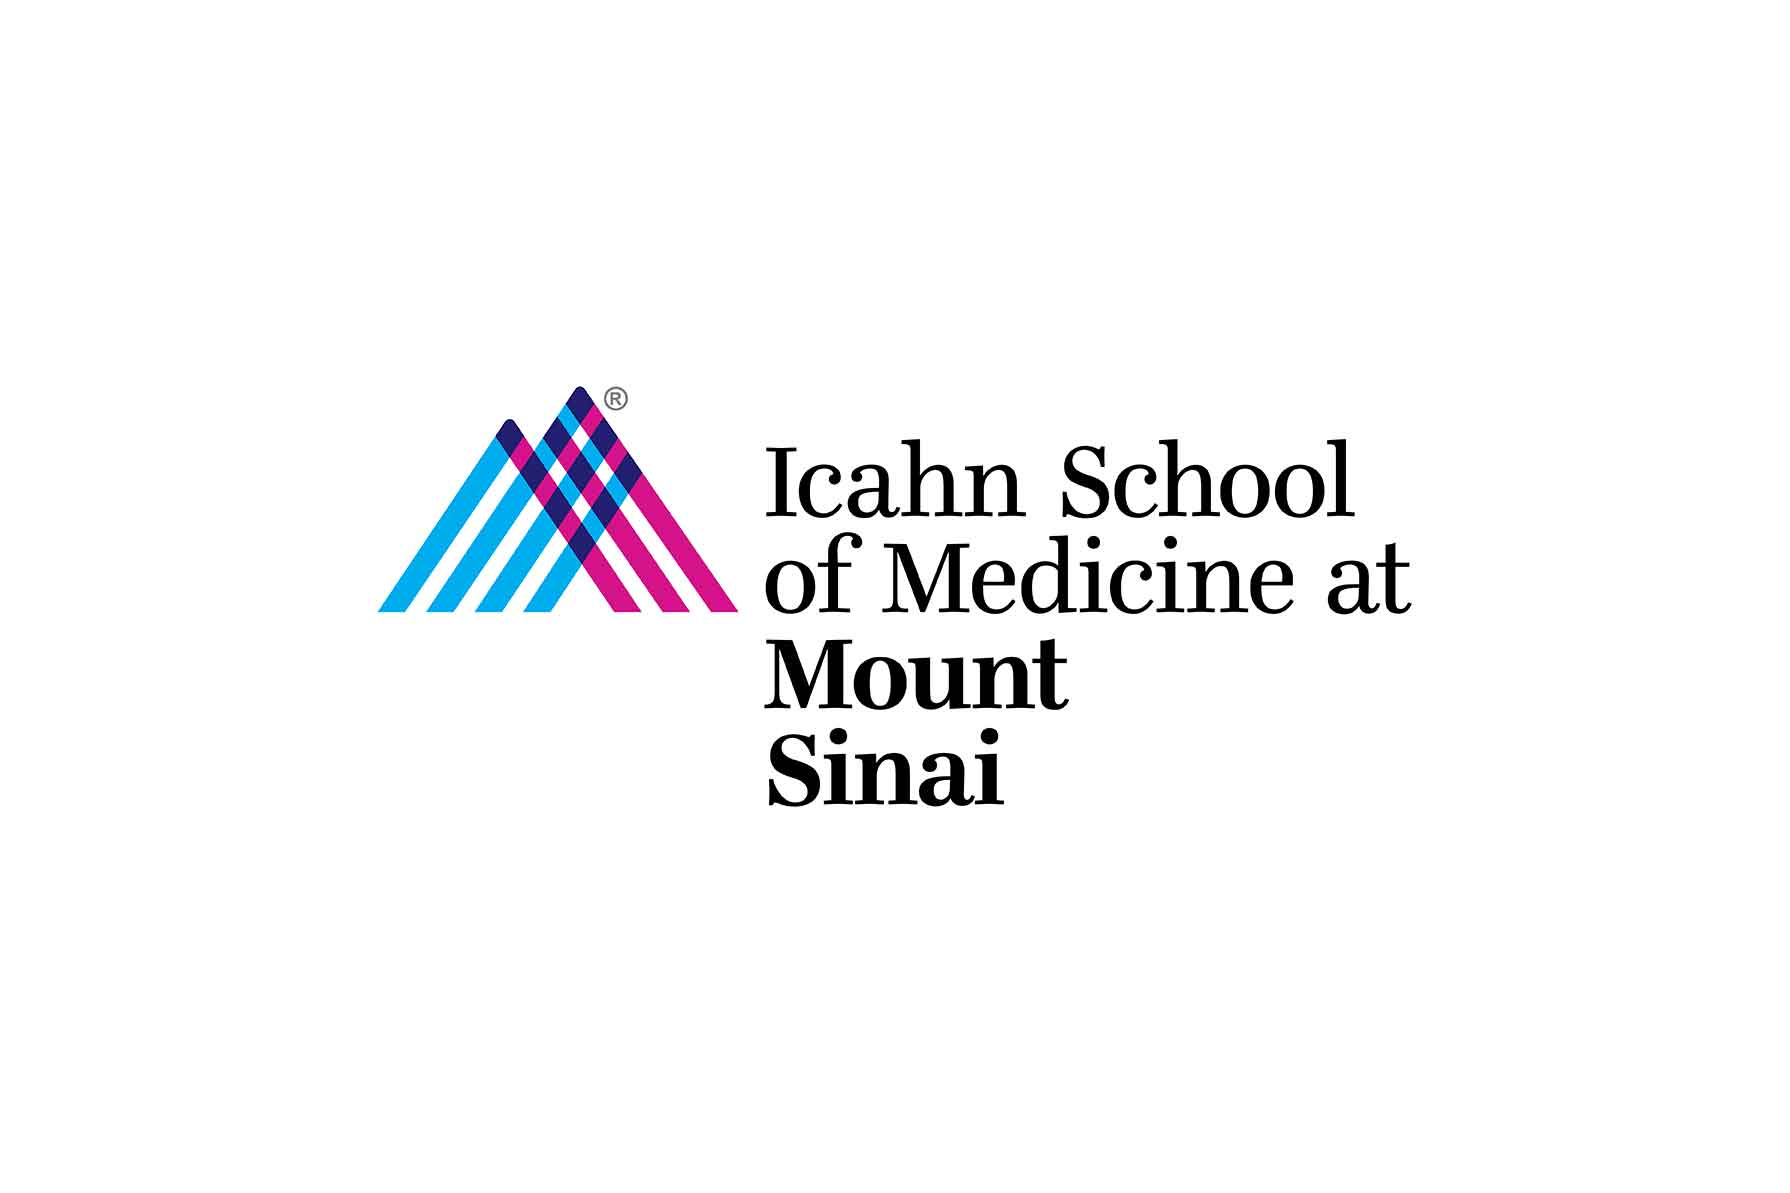 Icahn School of Medicine Logo